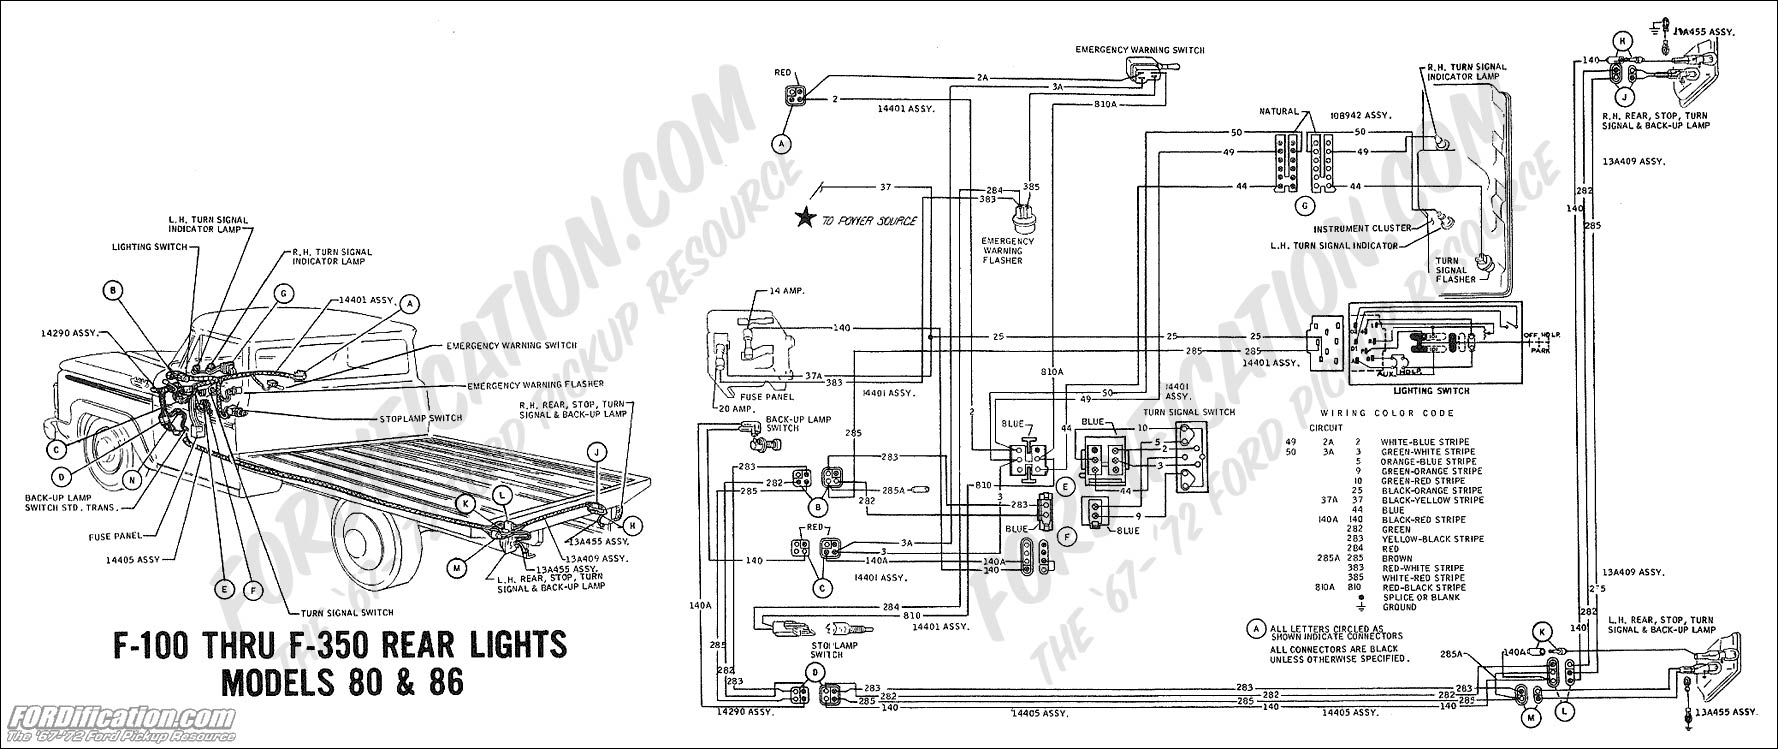 Miraculous 1969 Ford Truck Wiring Wiring Diagram Wiring Cloud Onicaxeromohammedshrineorg